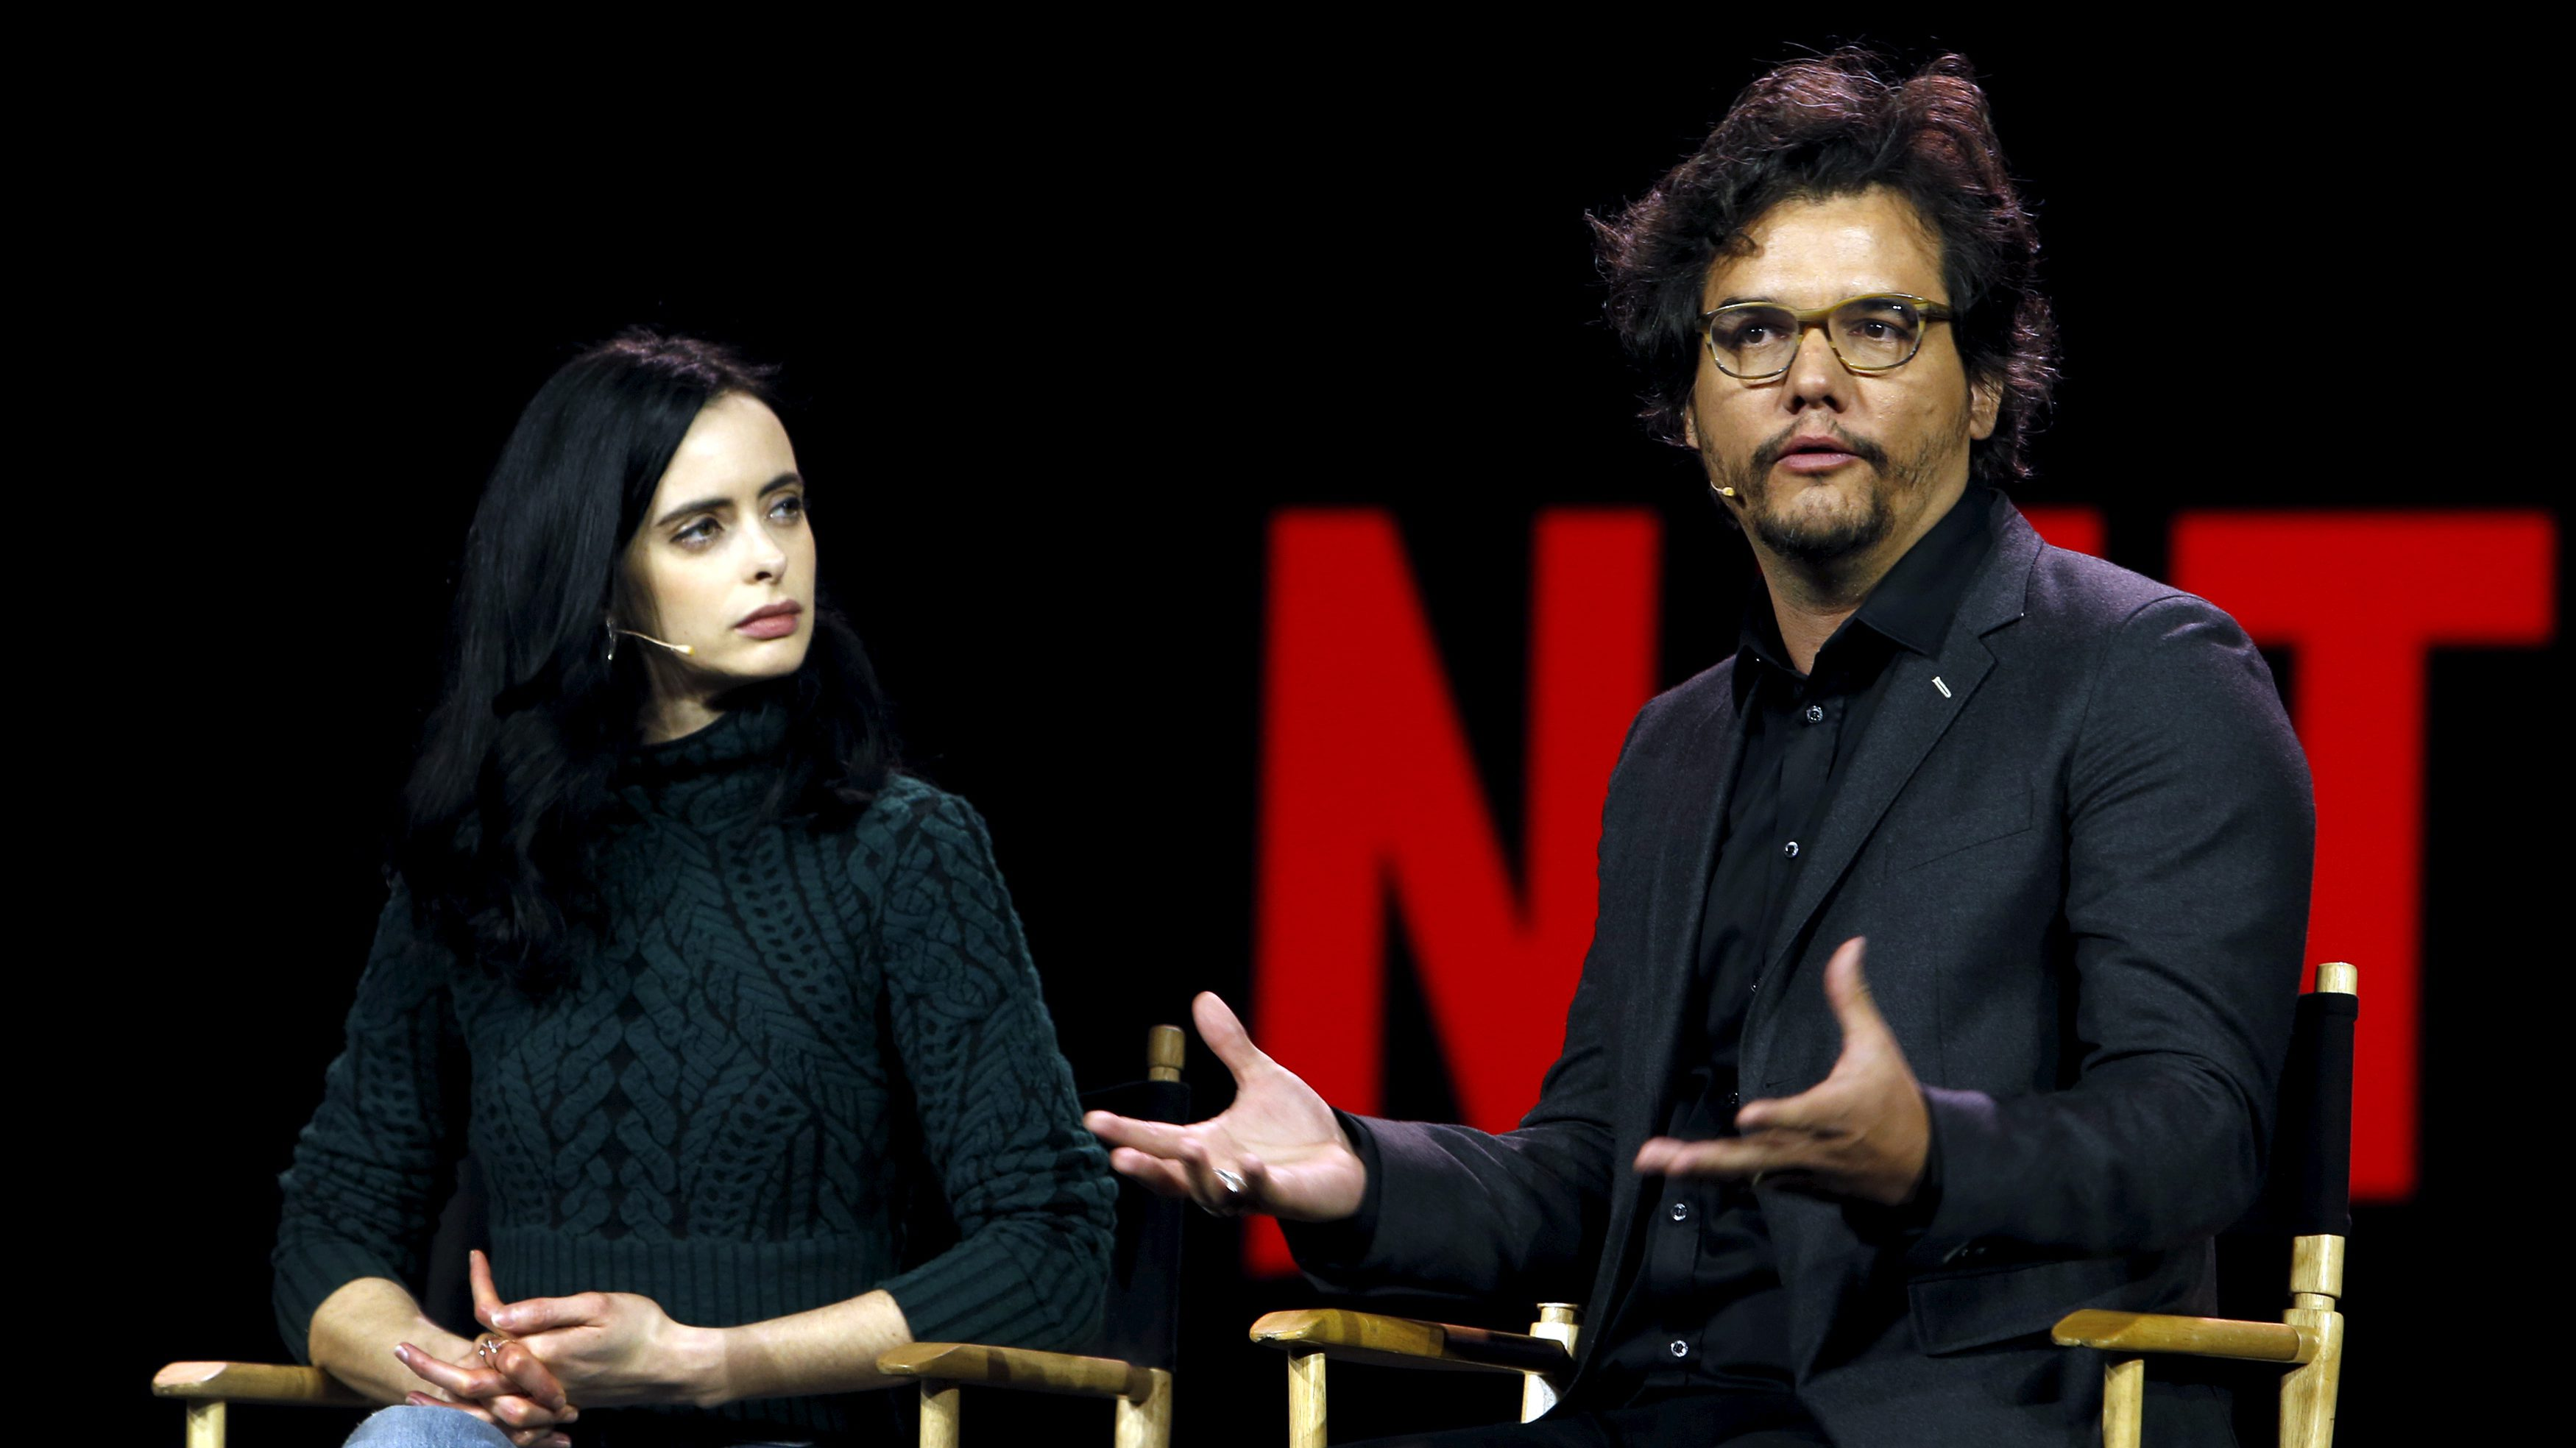 Actress Krysten Ritter (L) listens to Brazilian actor Wagner Moura during a Netflix keynote address at the 2016 CES trade show in Las Vegas, Nevada, January 6, 2016.